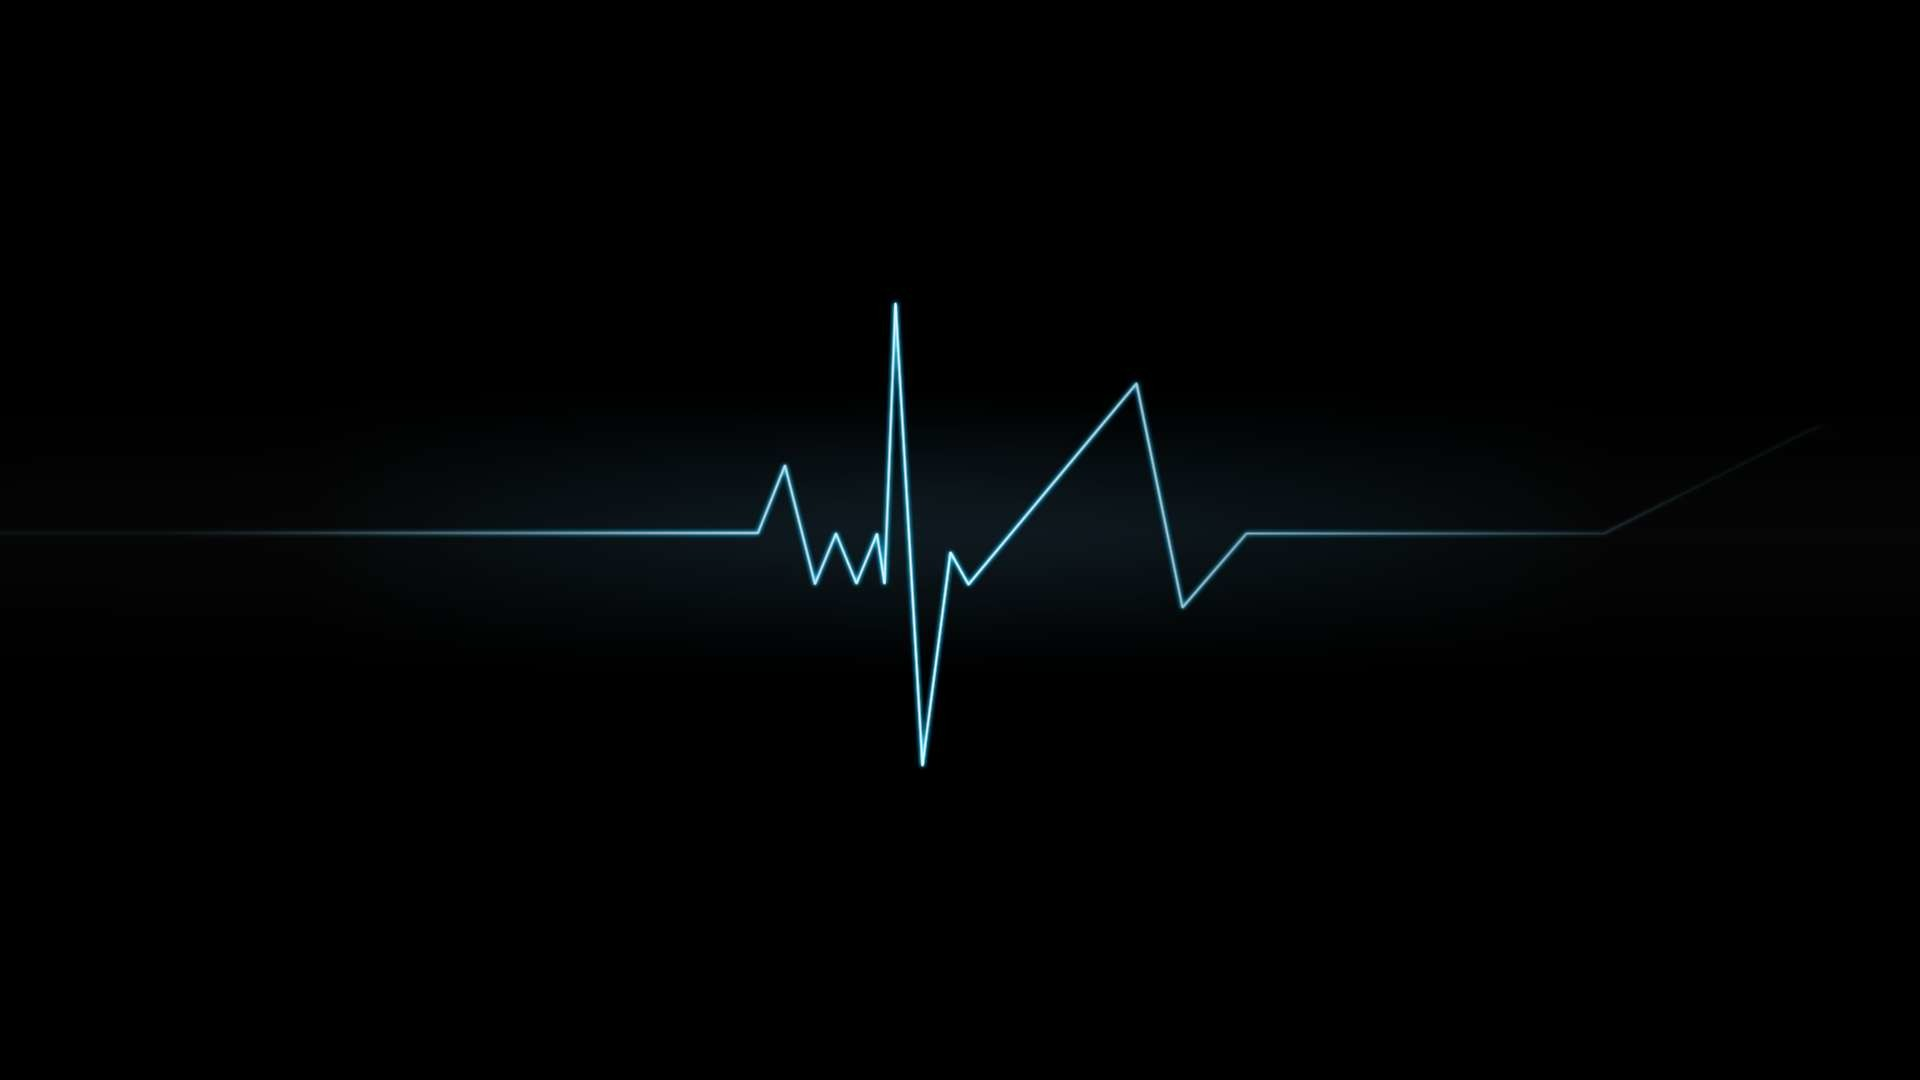 Heartbeat Wallpaper 64 Pictures